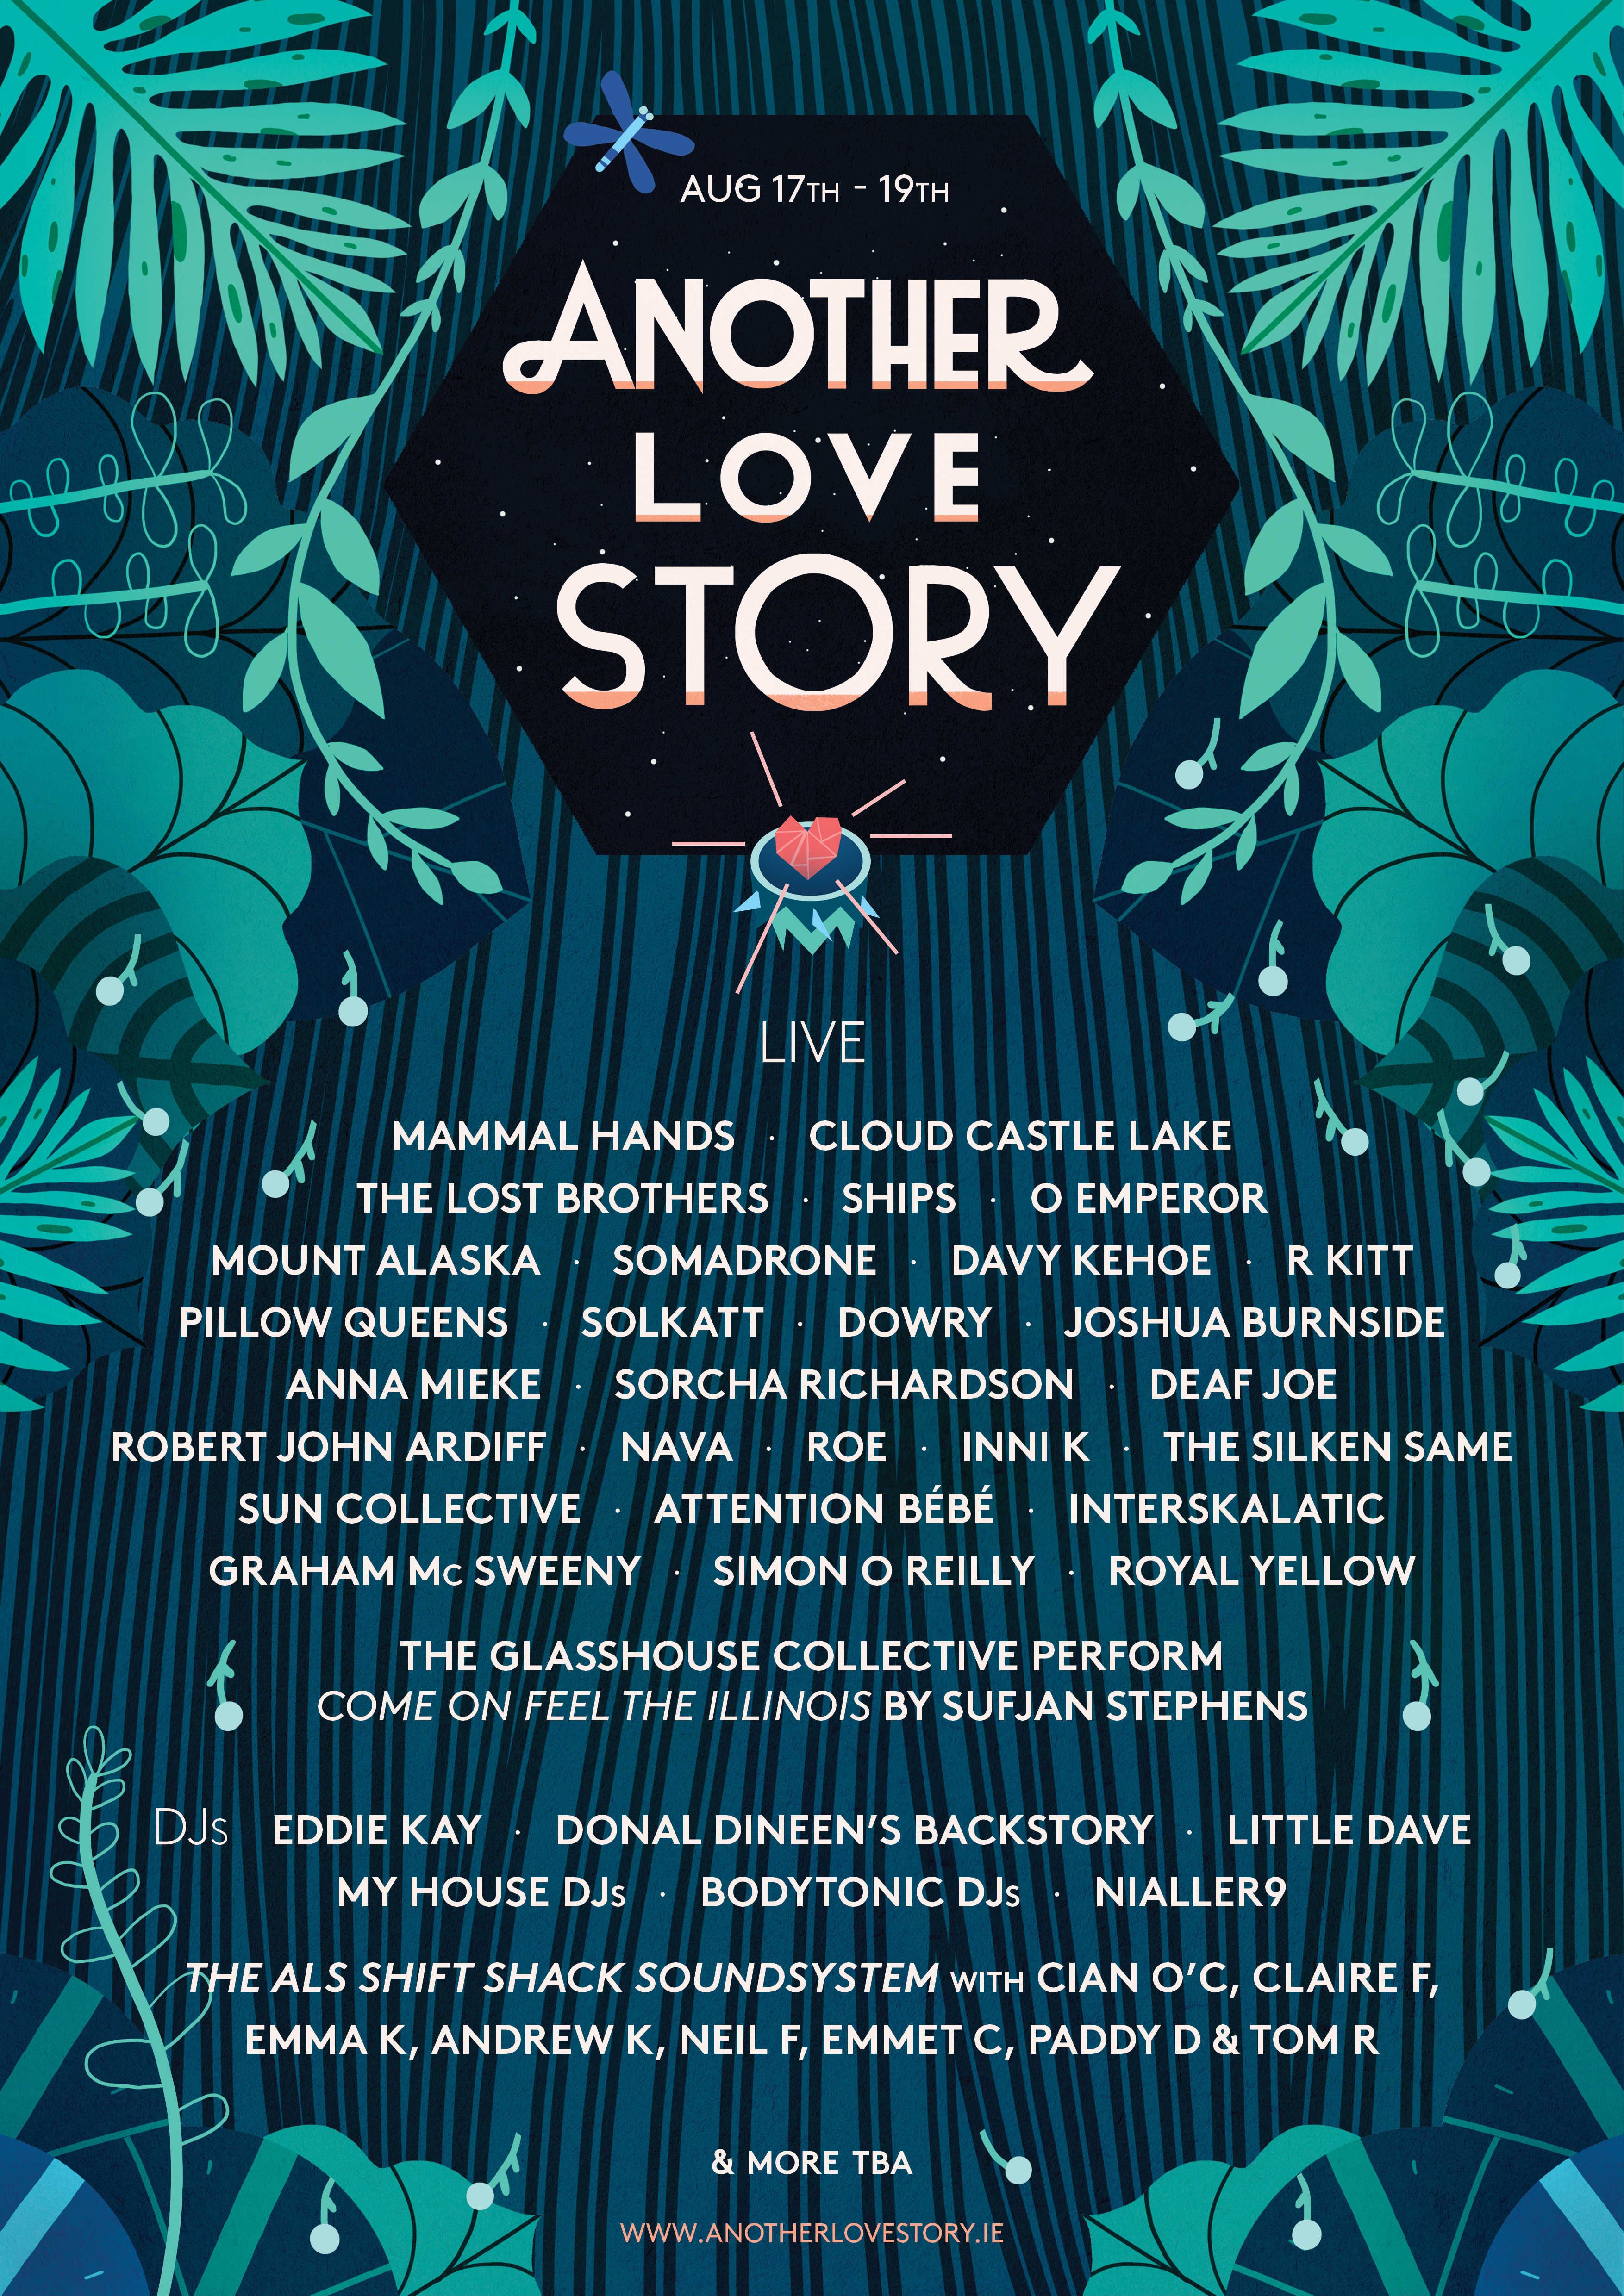 Another Love Story 2018 line-up announced including Ships, Cloud Castle Lake, Sorcha Richardson & more